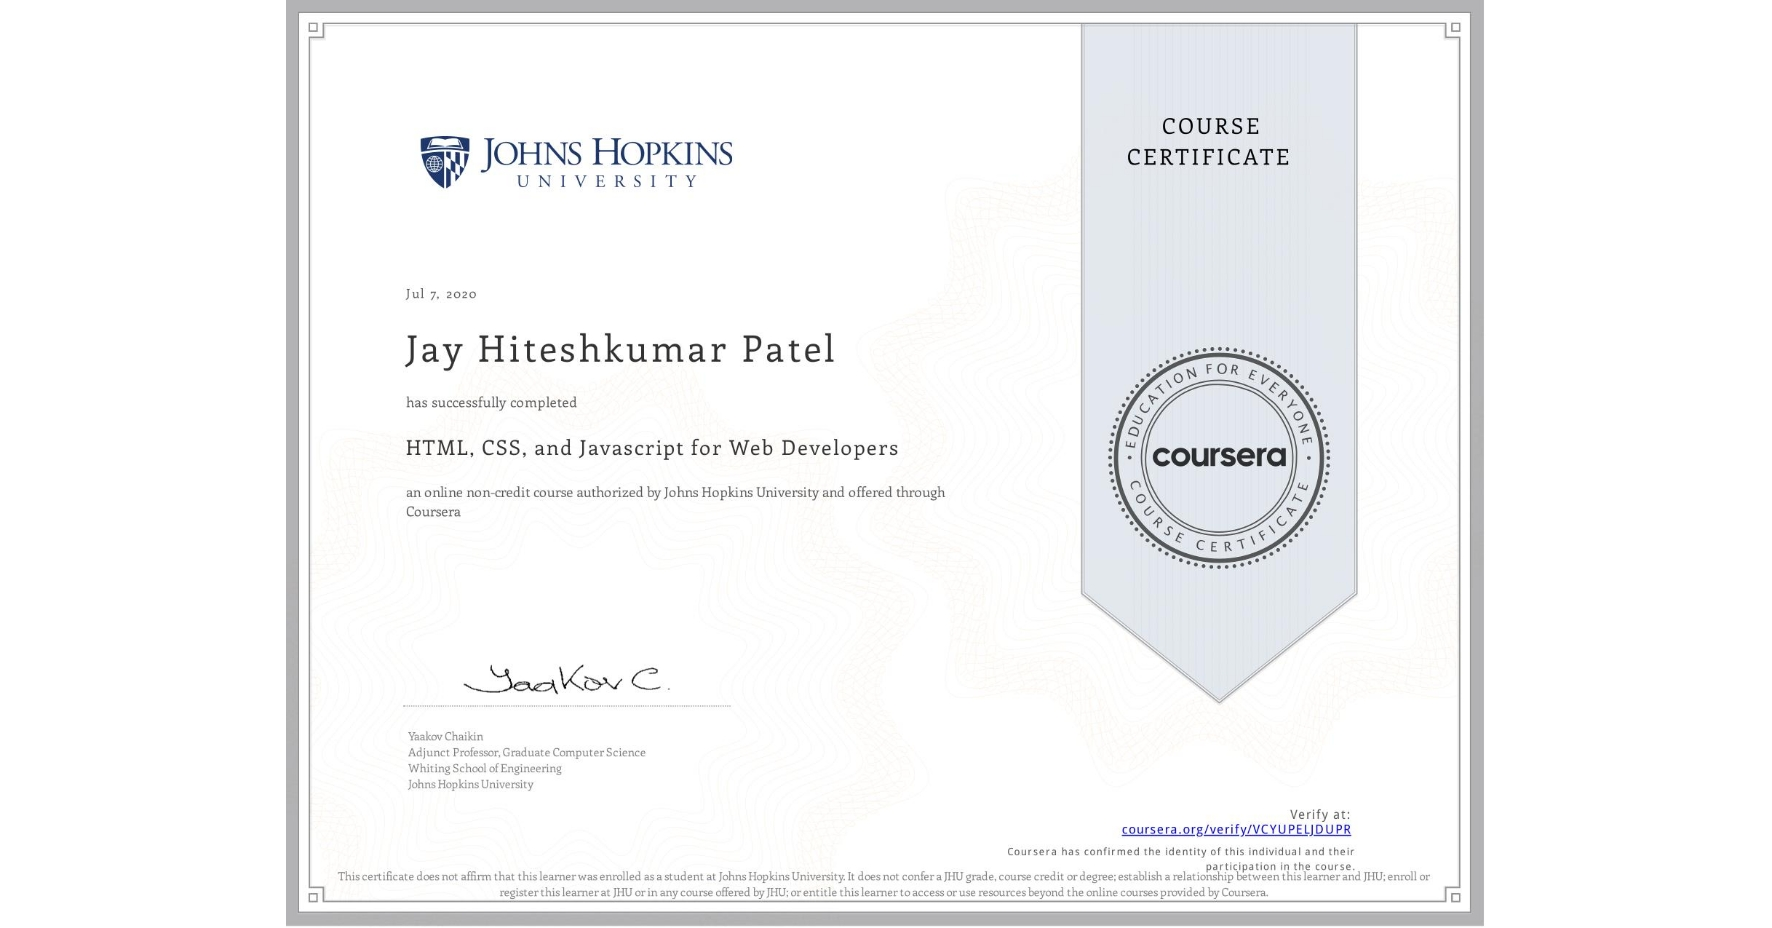 View certificate for Jay Hiteshkumar Patel, HTML, CSS, and Javascript for Web Developers, an online non-credit course authorized by Johns Hopkins University and offered through Coursera